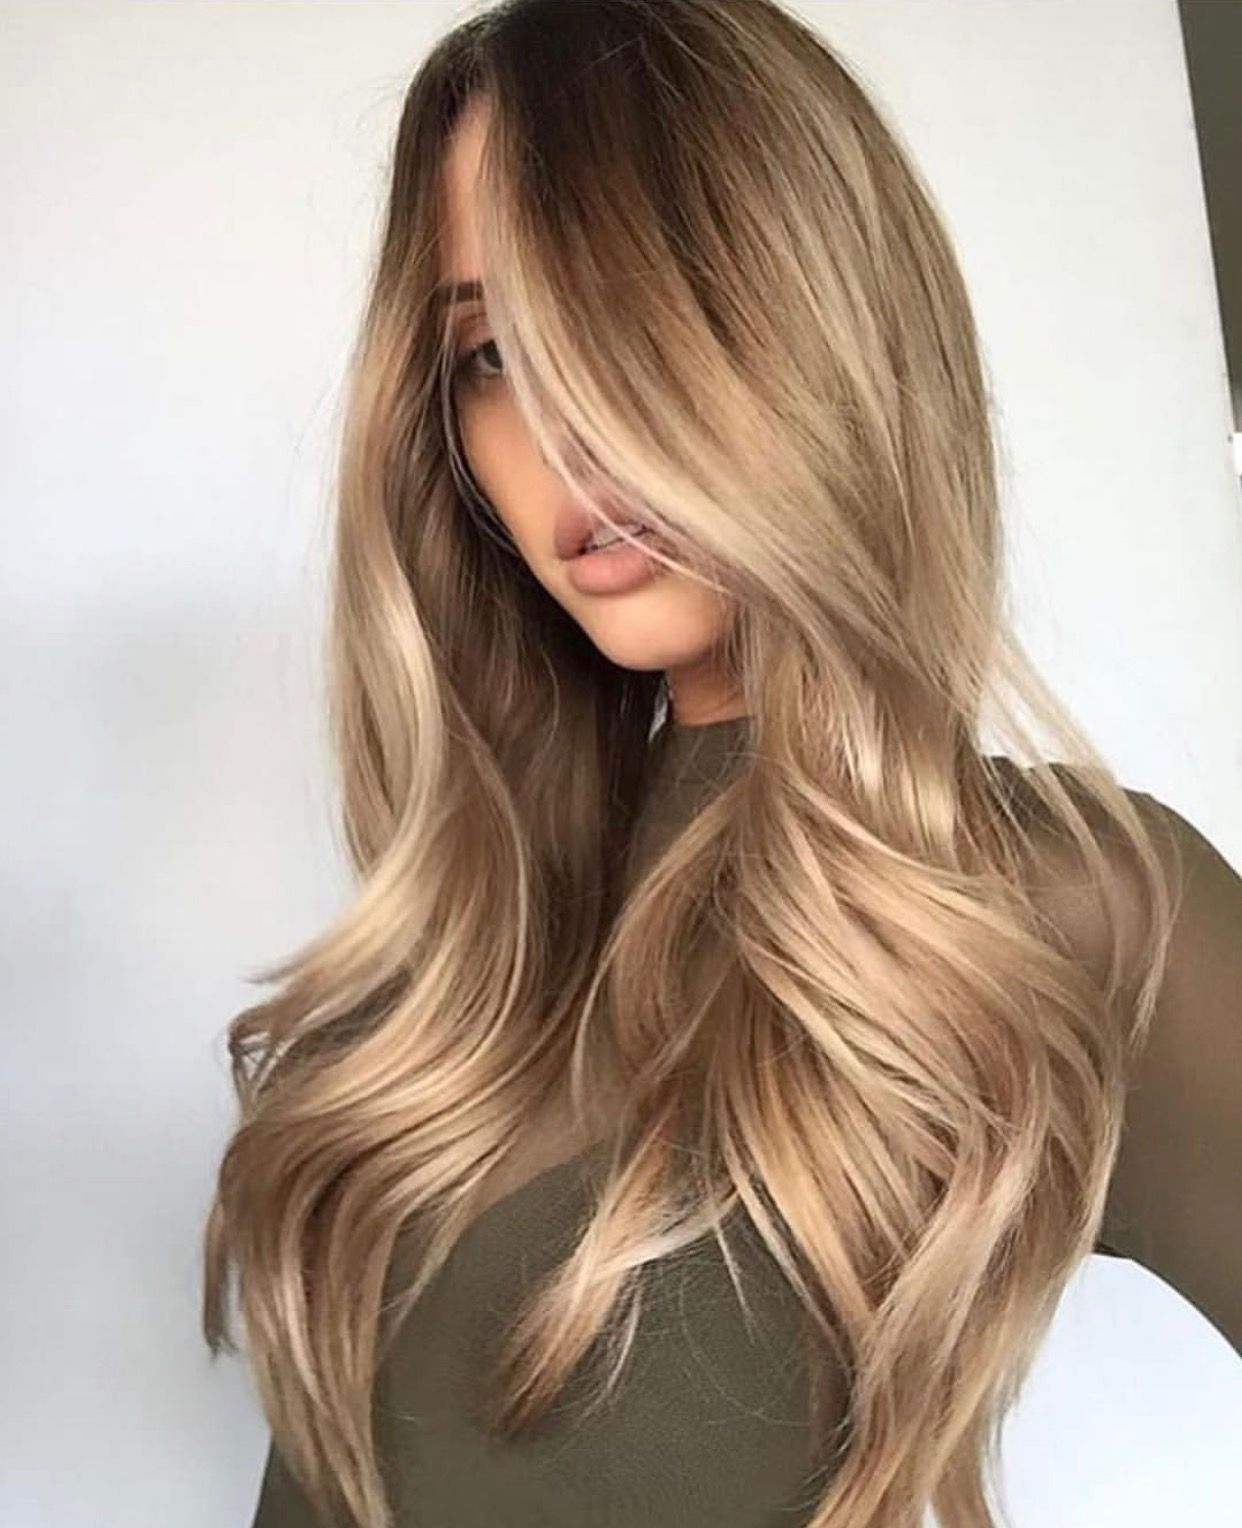 Pin by jenna butrym on fashionista pinterest hair coloring hair